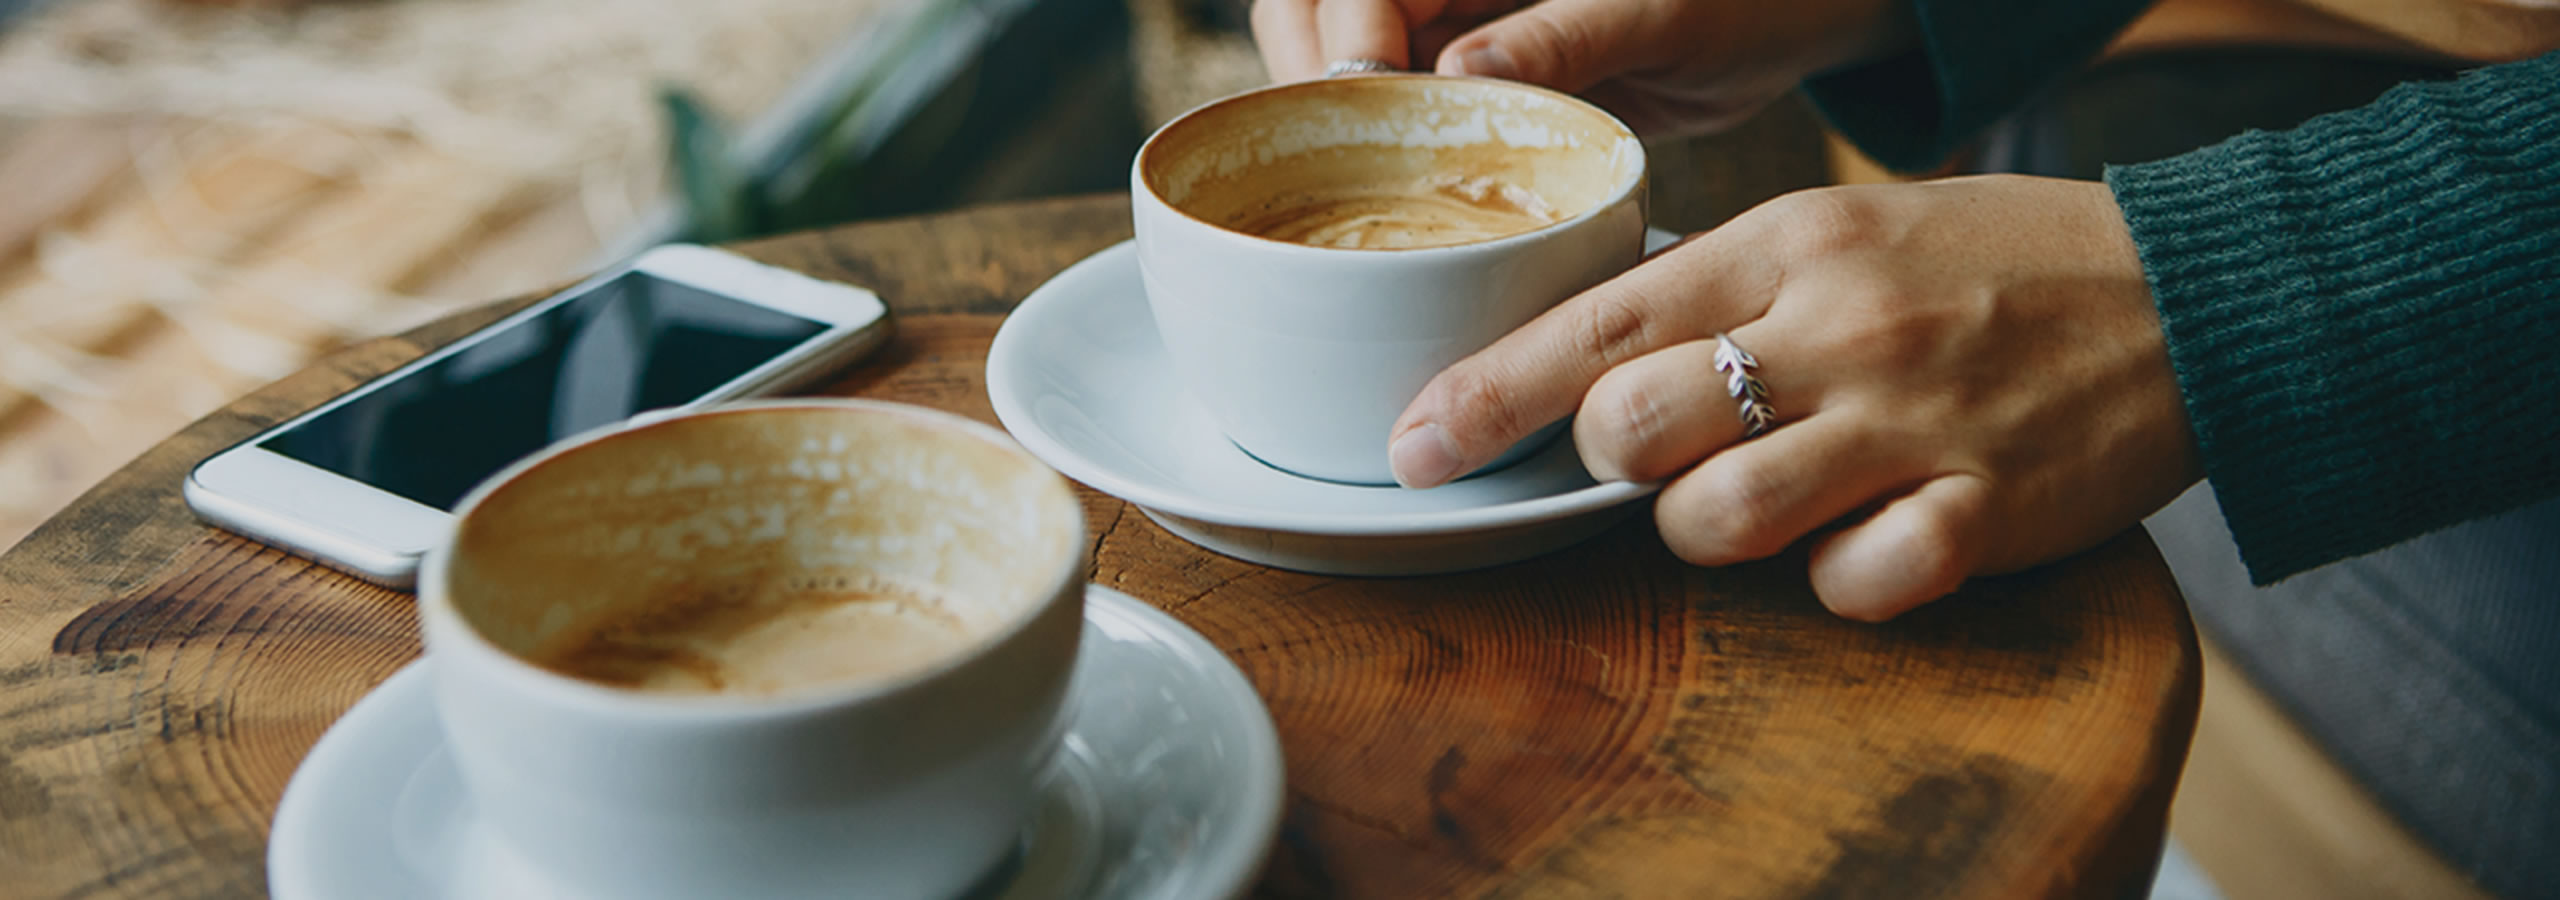 Hands holding a coffee cup in a café with a phone nearby